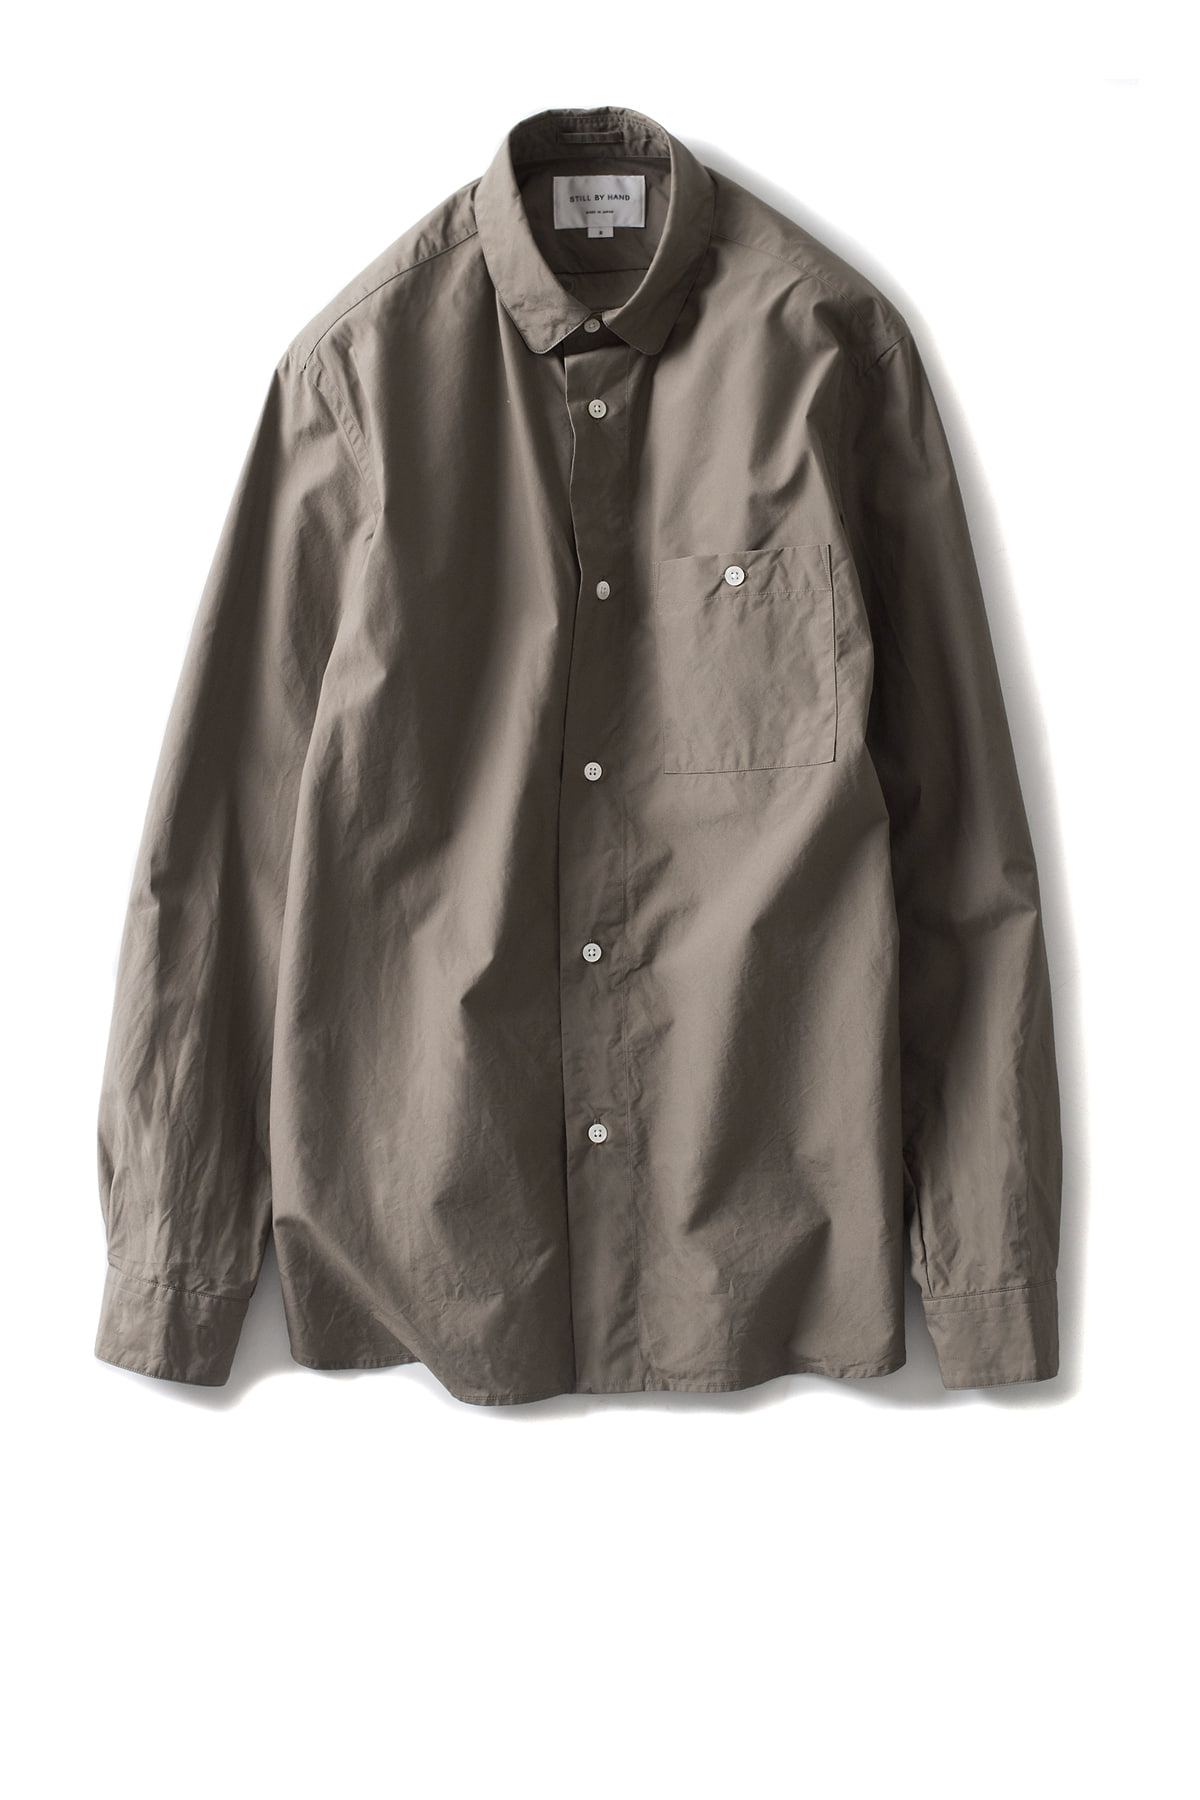 Still by Hand : Round Collar Shirt (Khaki)